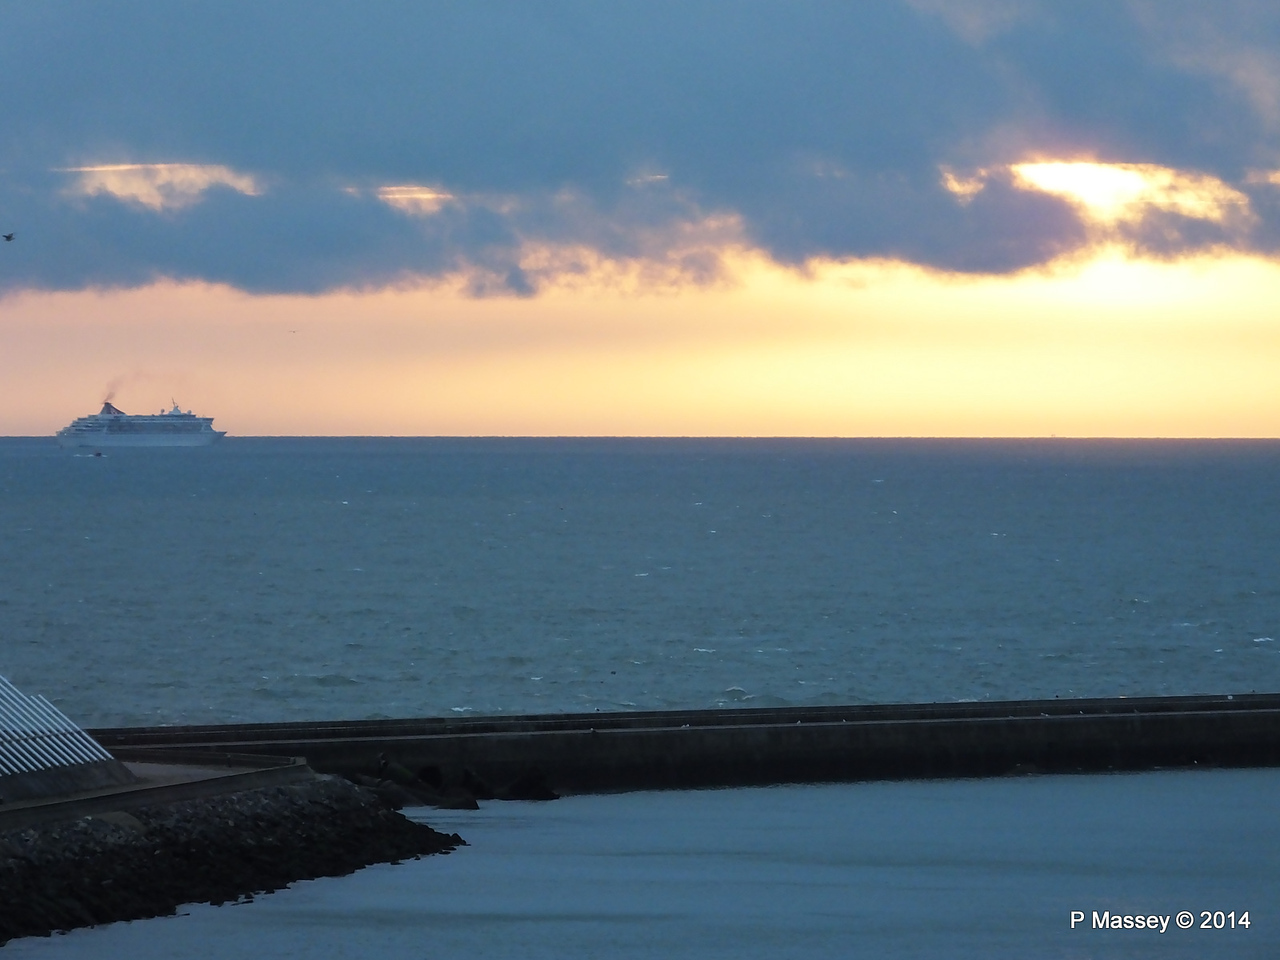 BALMORAL Passing Le Havre from Rouen to La Pallice PDM 06-10-2014 18-16-37